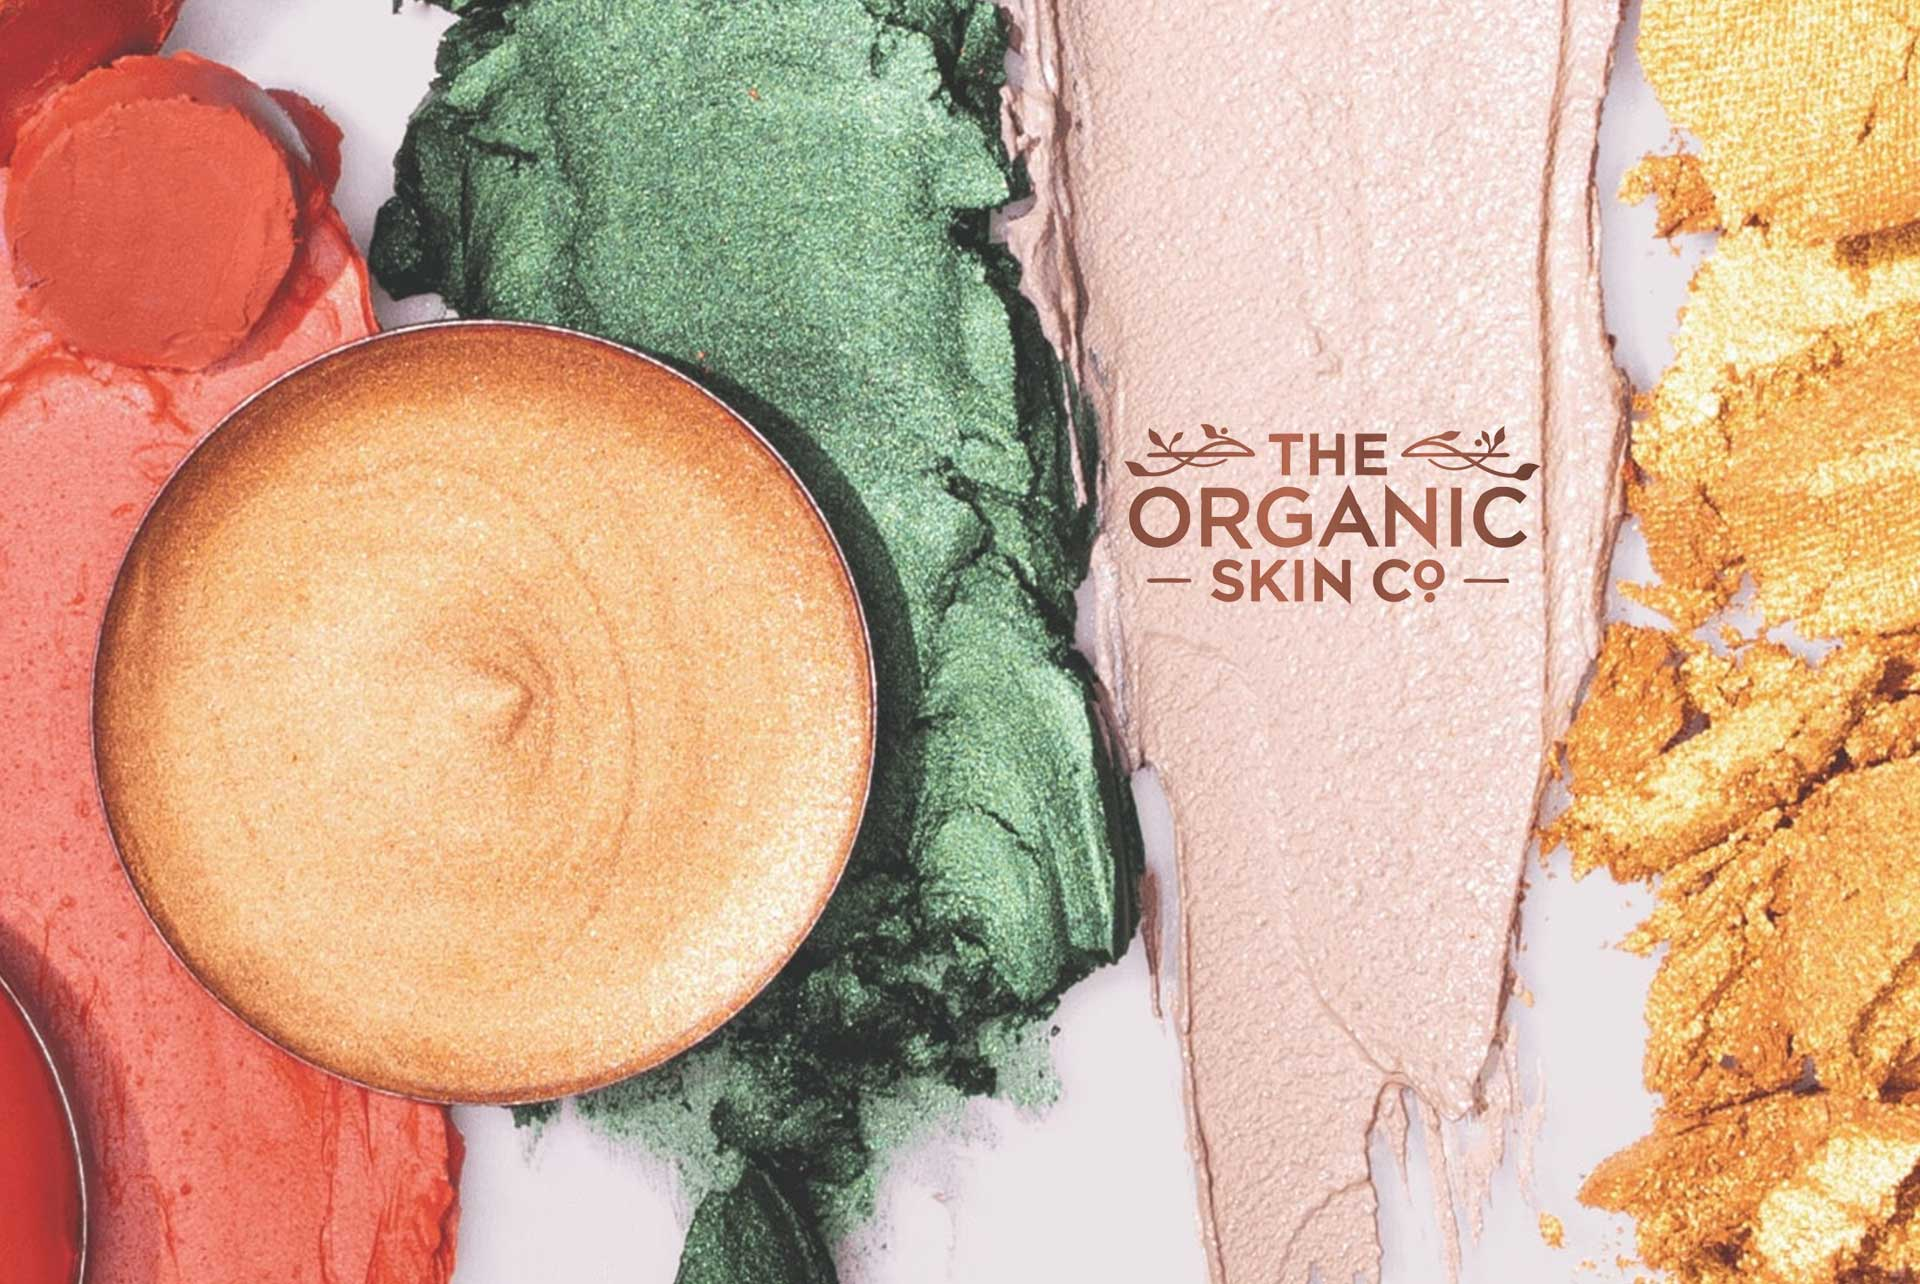 Is The Organic Skin Co. Cruelty-Free & Vegan?